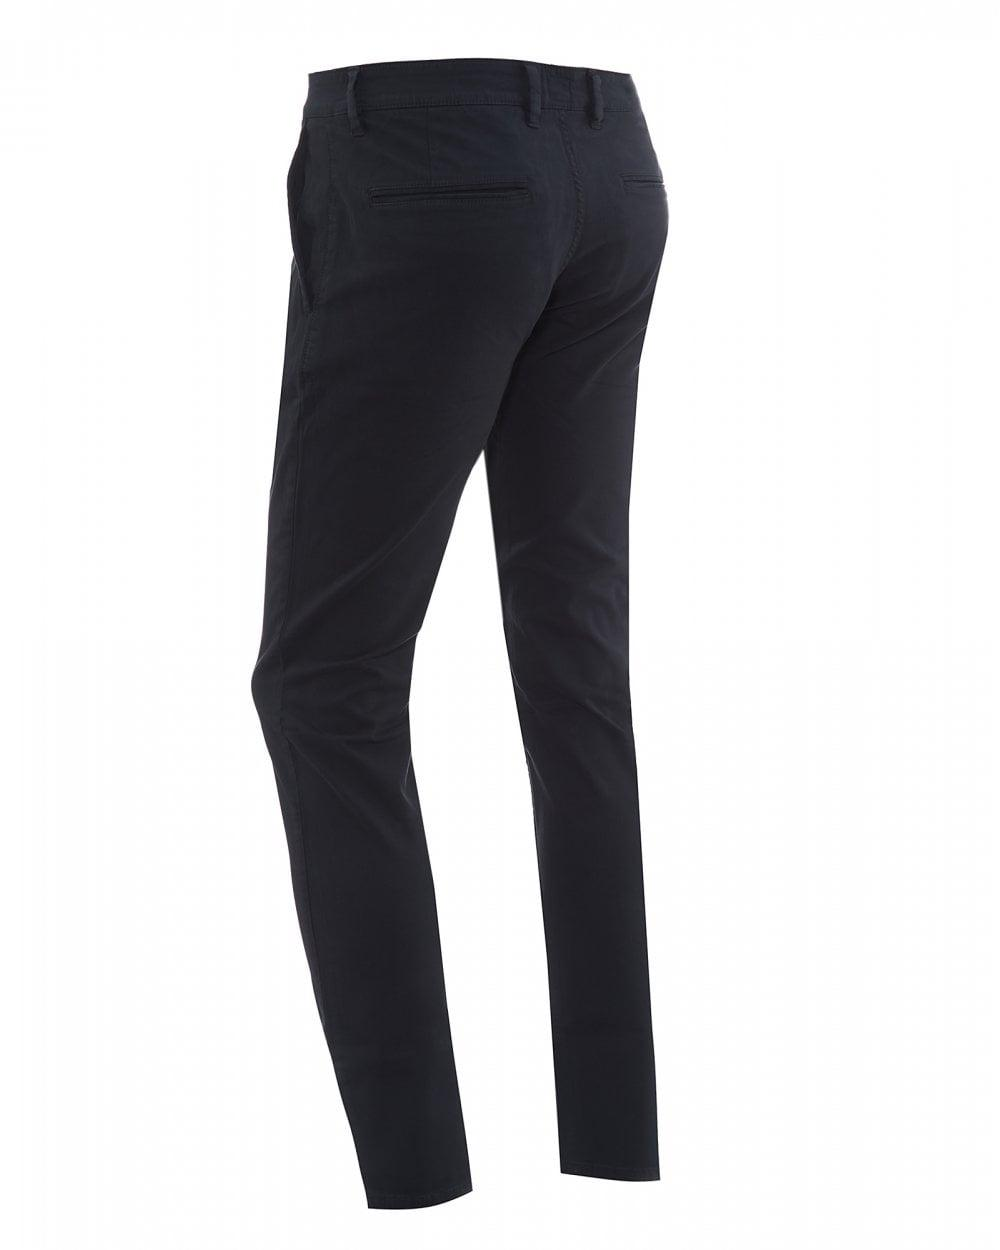 Hugo Boss Slim-fit casual chinos in brushed stretch cotton       RRP £89